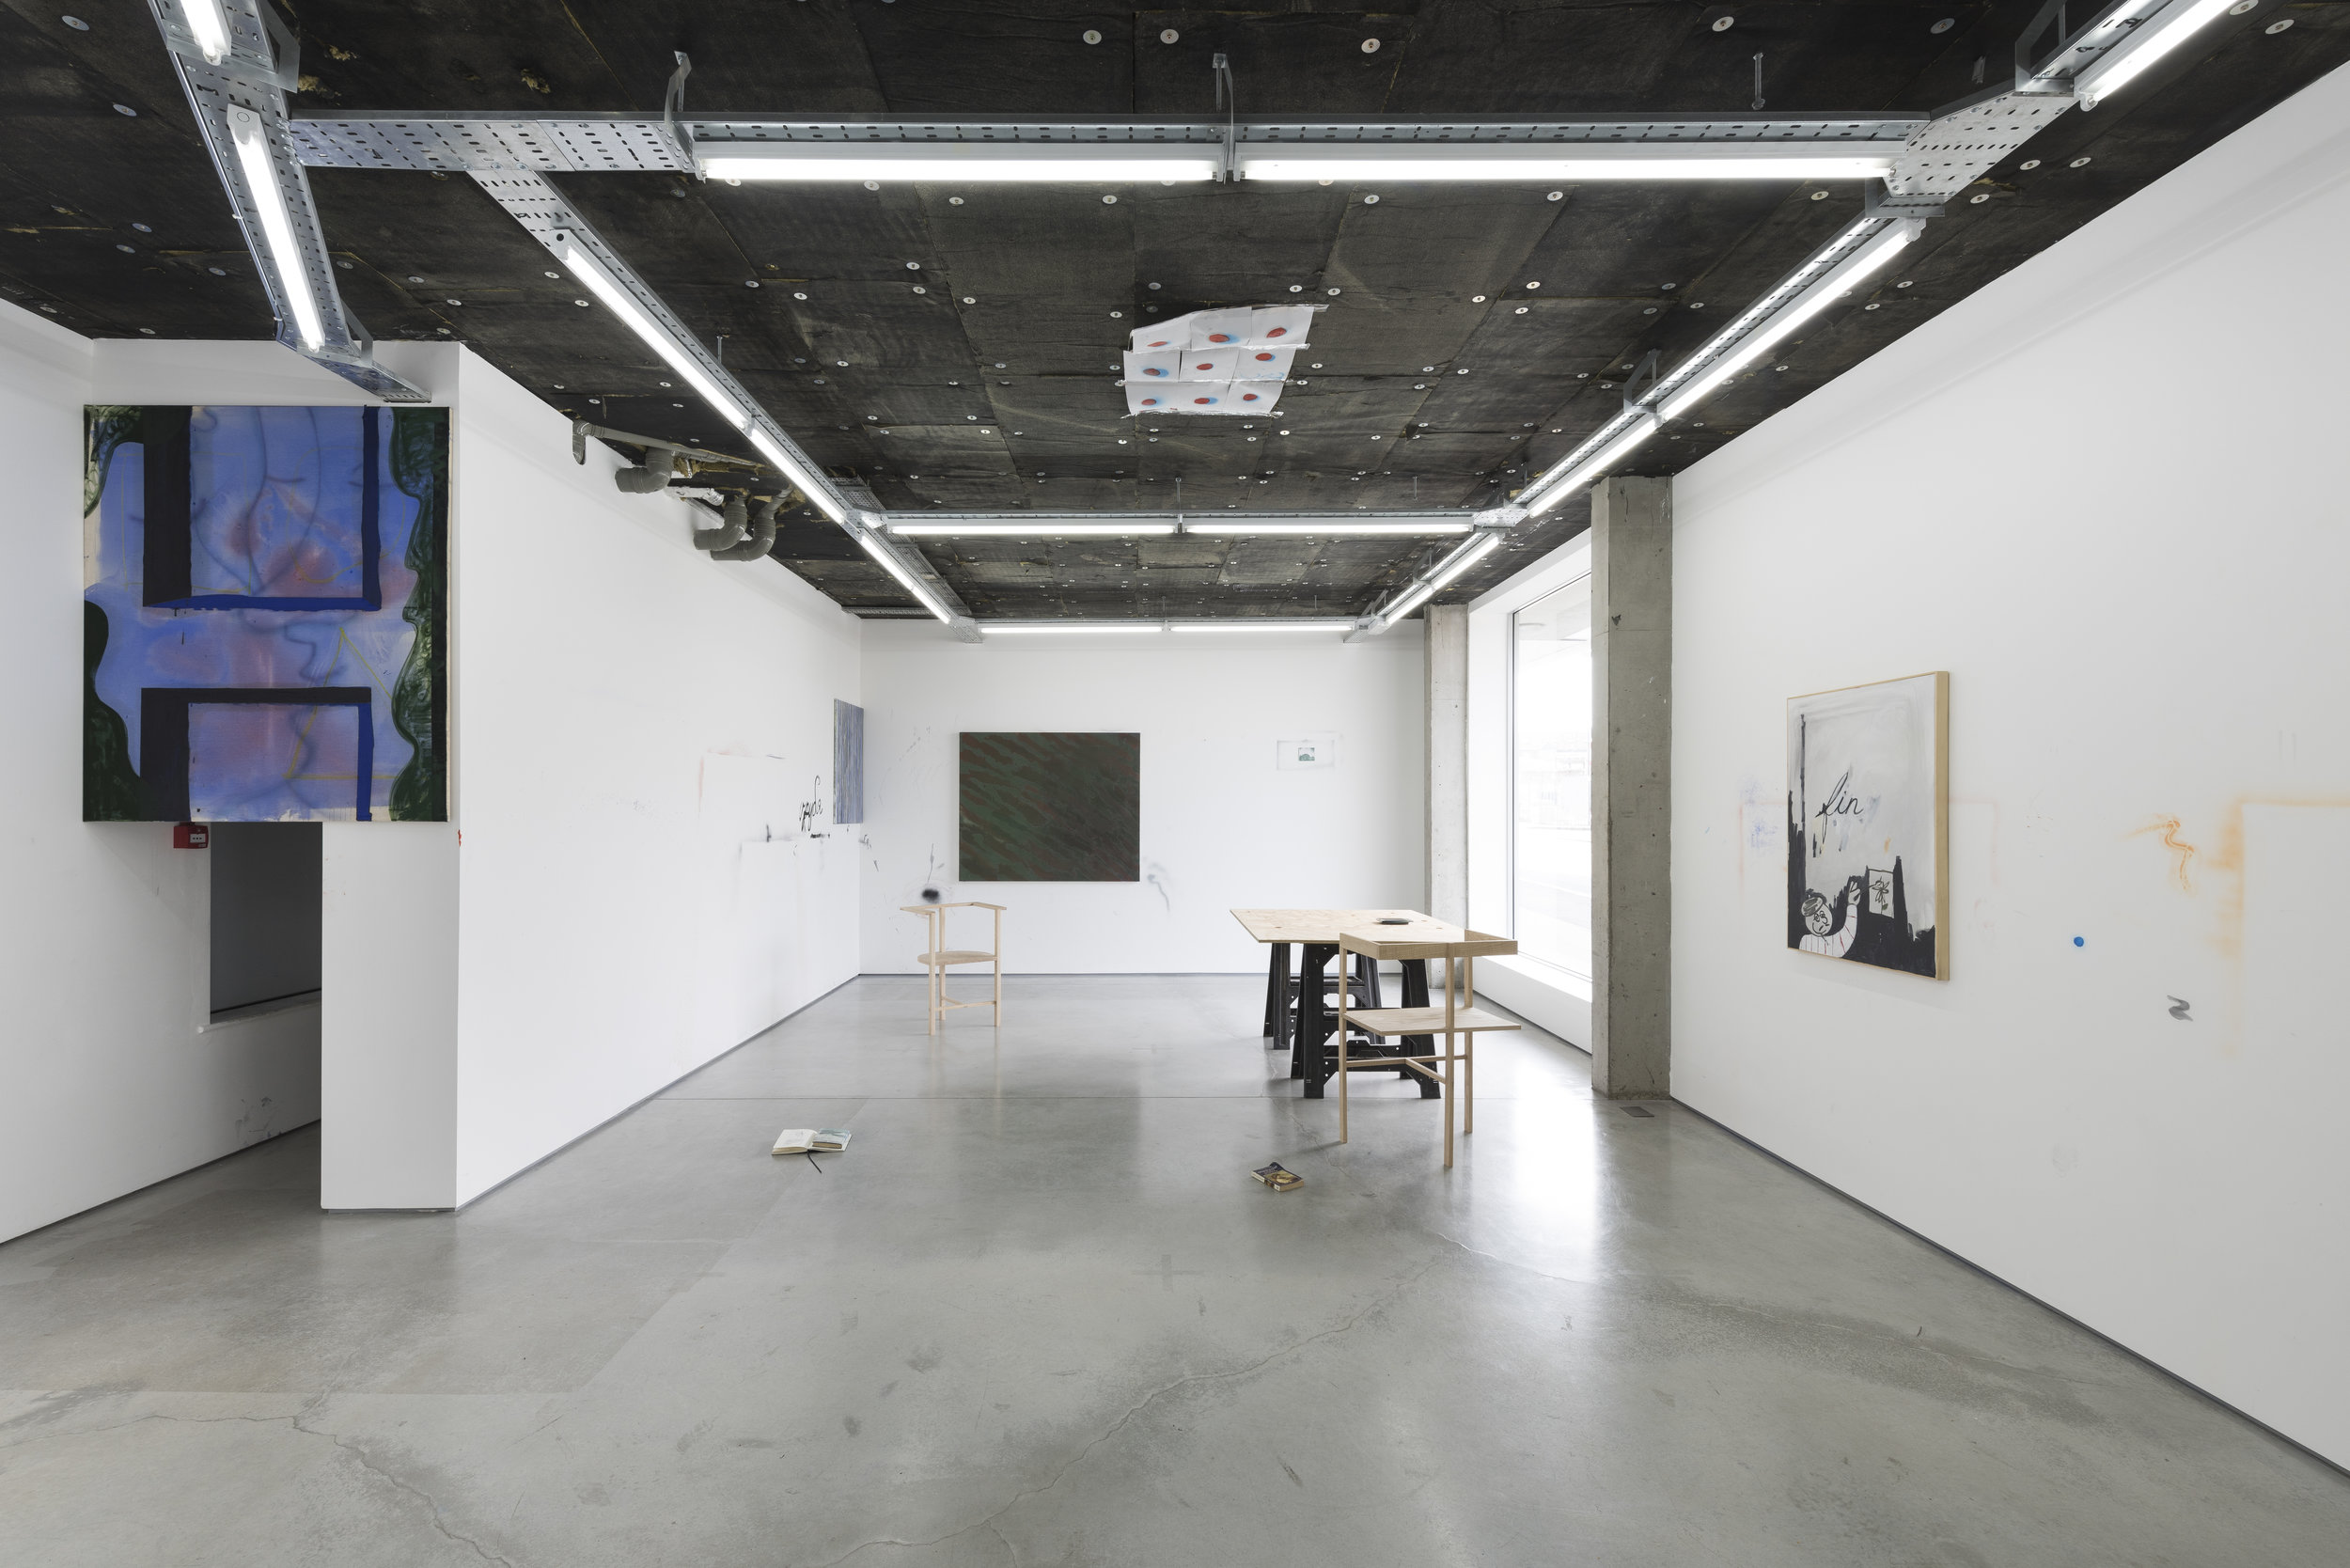 The Fool   group exhibition curated by  Westminster Waste  with Amy Bessone, Benjamin Brett, Matt Moser-Clark, Charlotte Develter, Ted Gahl, Tobias Teschner, Sanja Todorović,  Rod Barton , London, UK, 2016